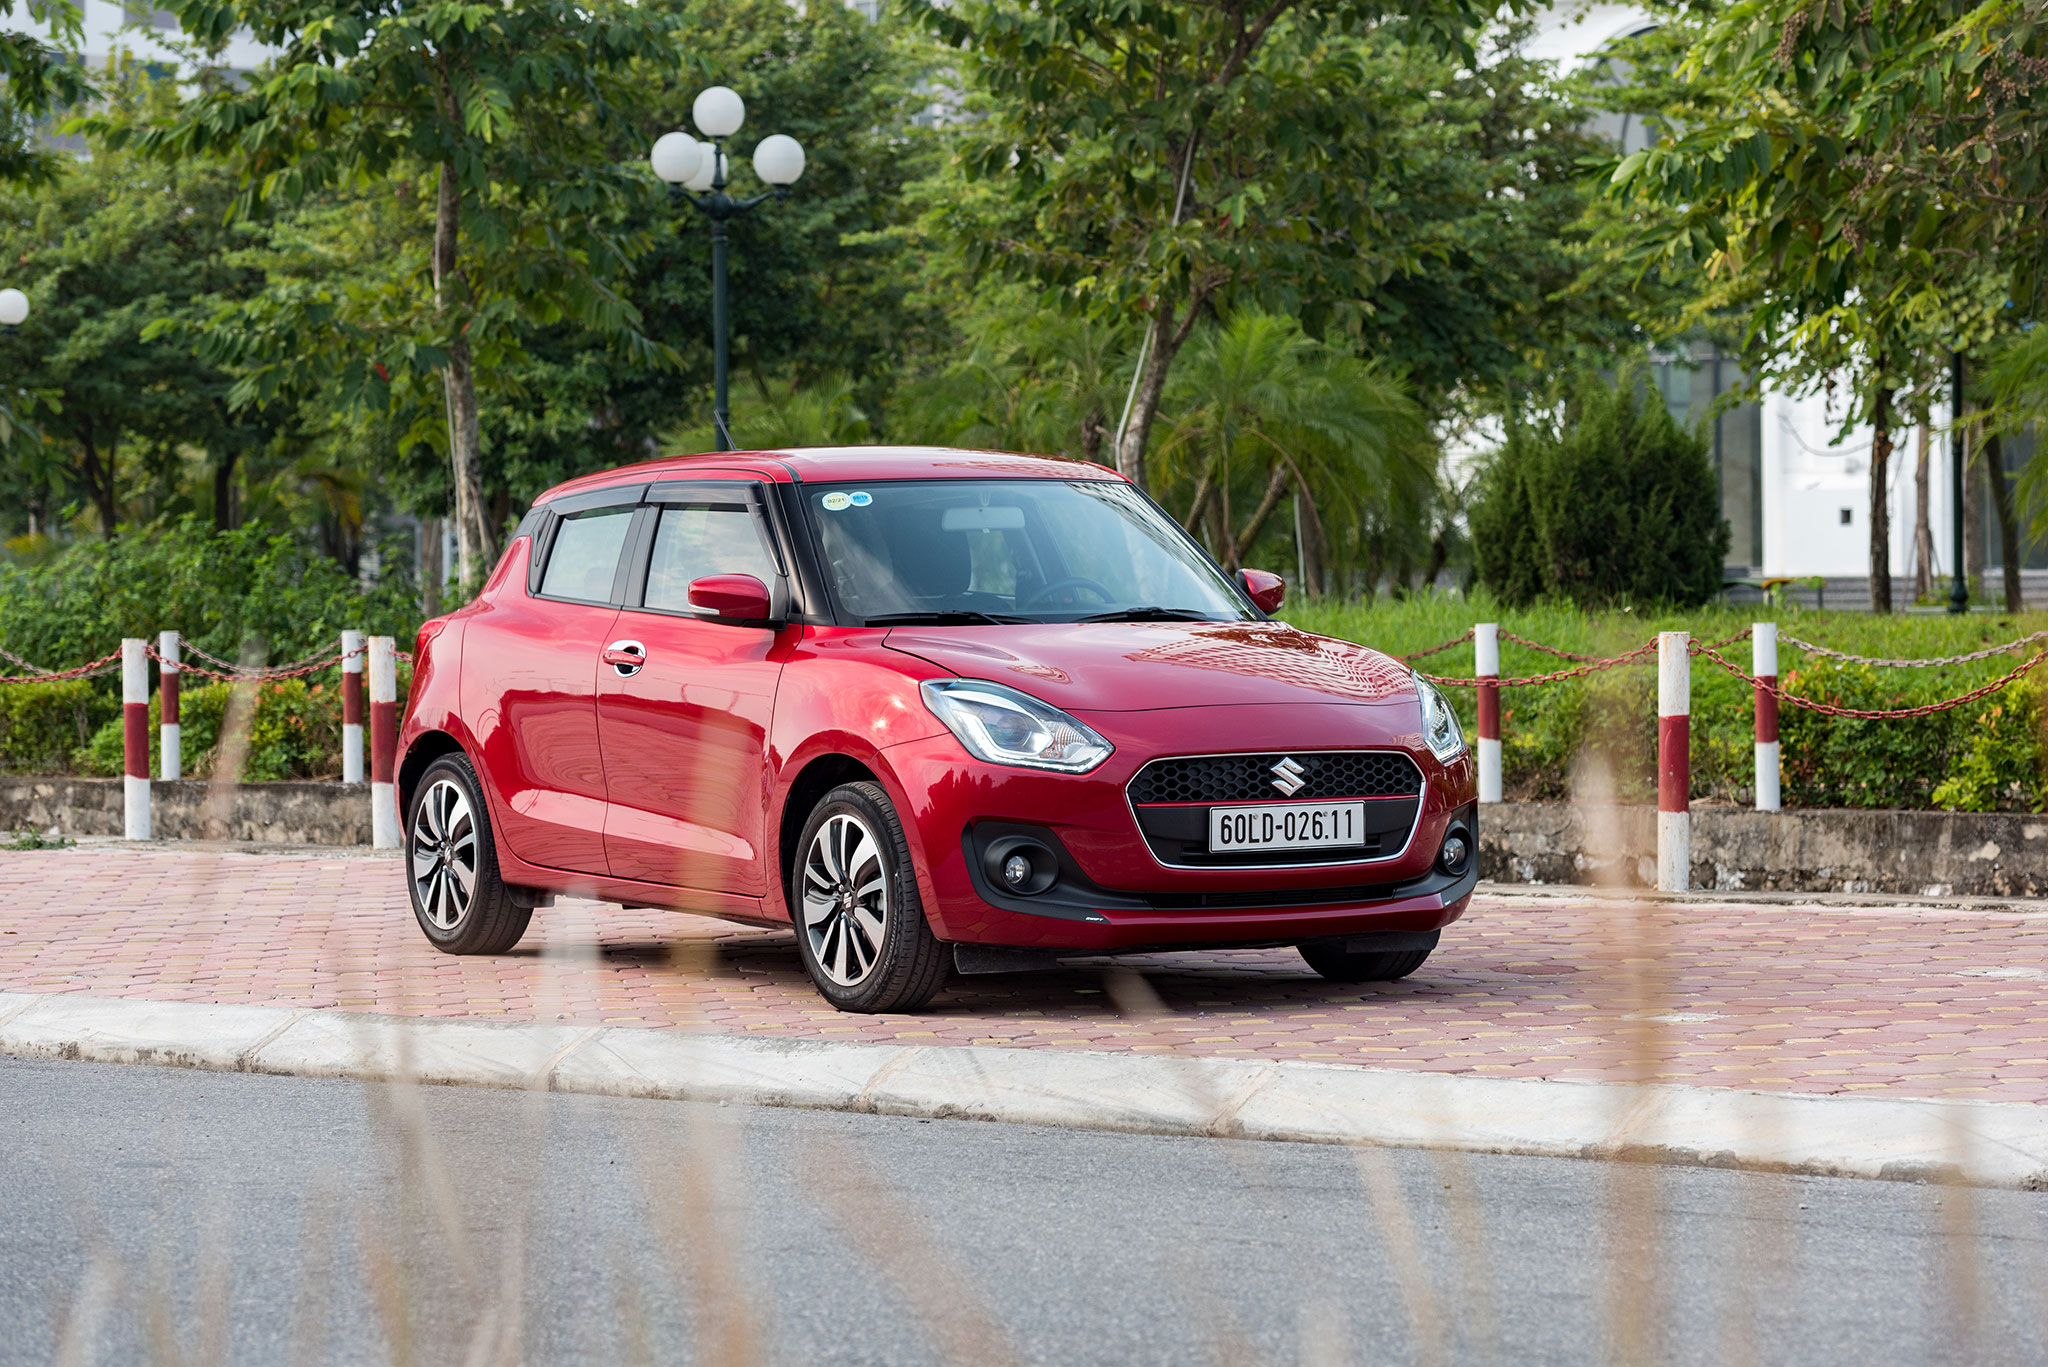 suzuki-swift-autodaily-02.jpg